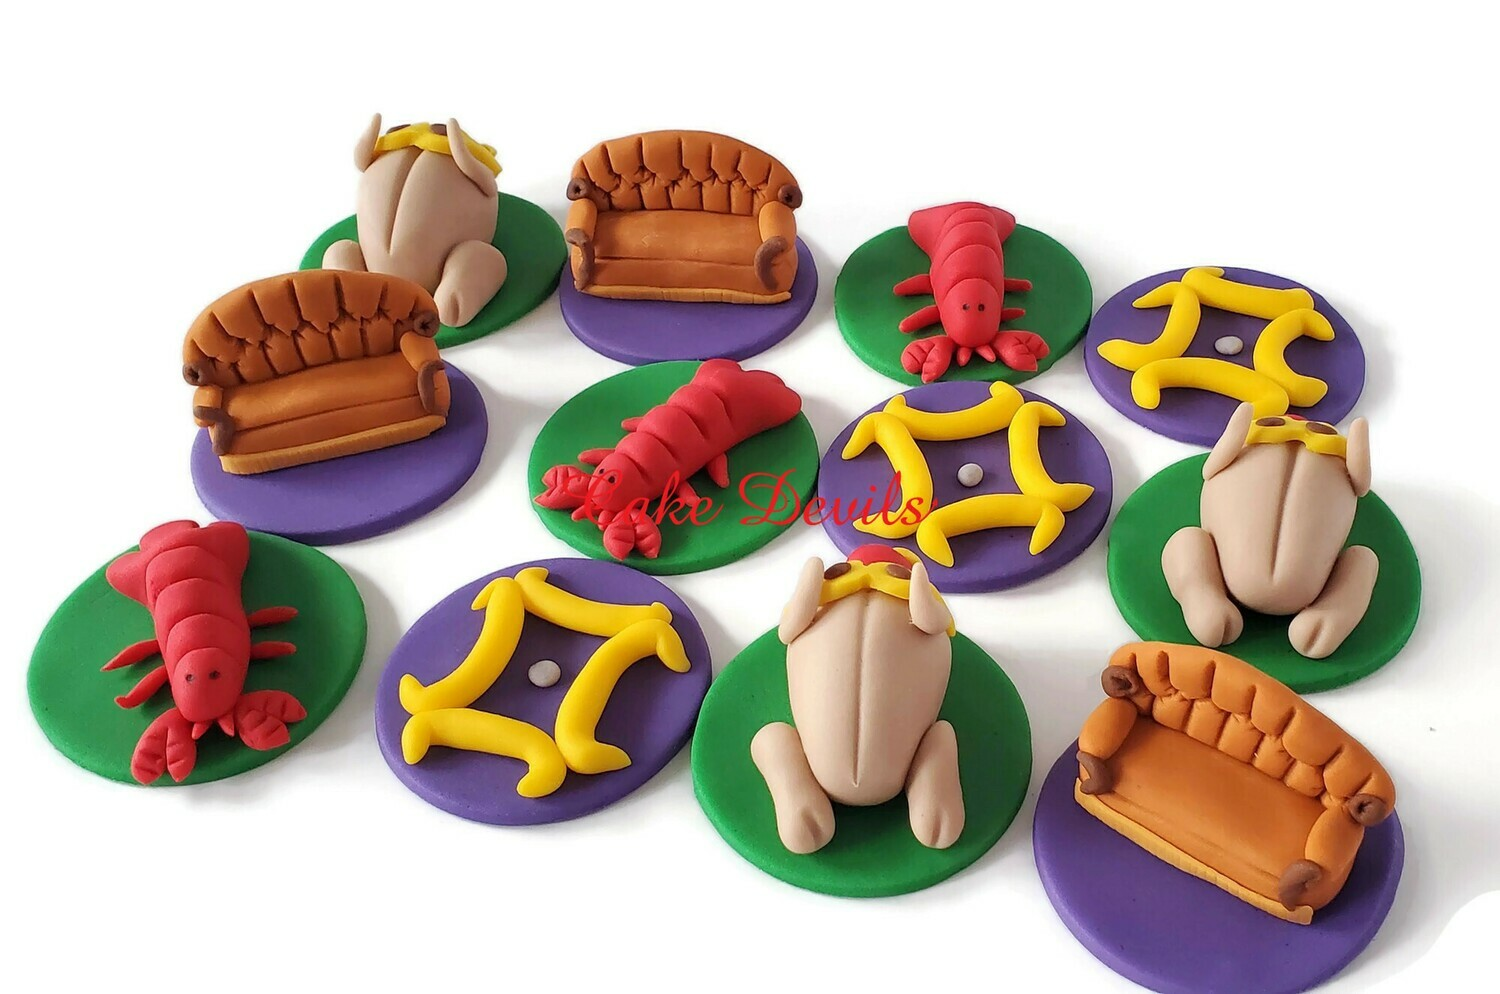 Friends Fondant Cupcake Toppers, Central Perk Couch, Fondant Lobster, Fondant Turkey, Friends frame